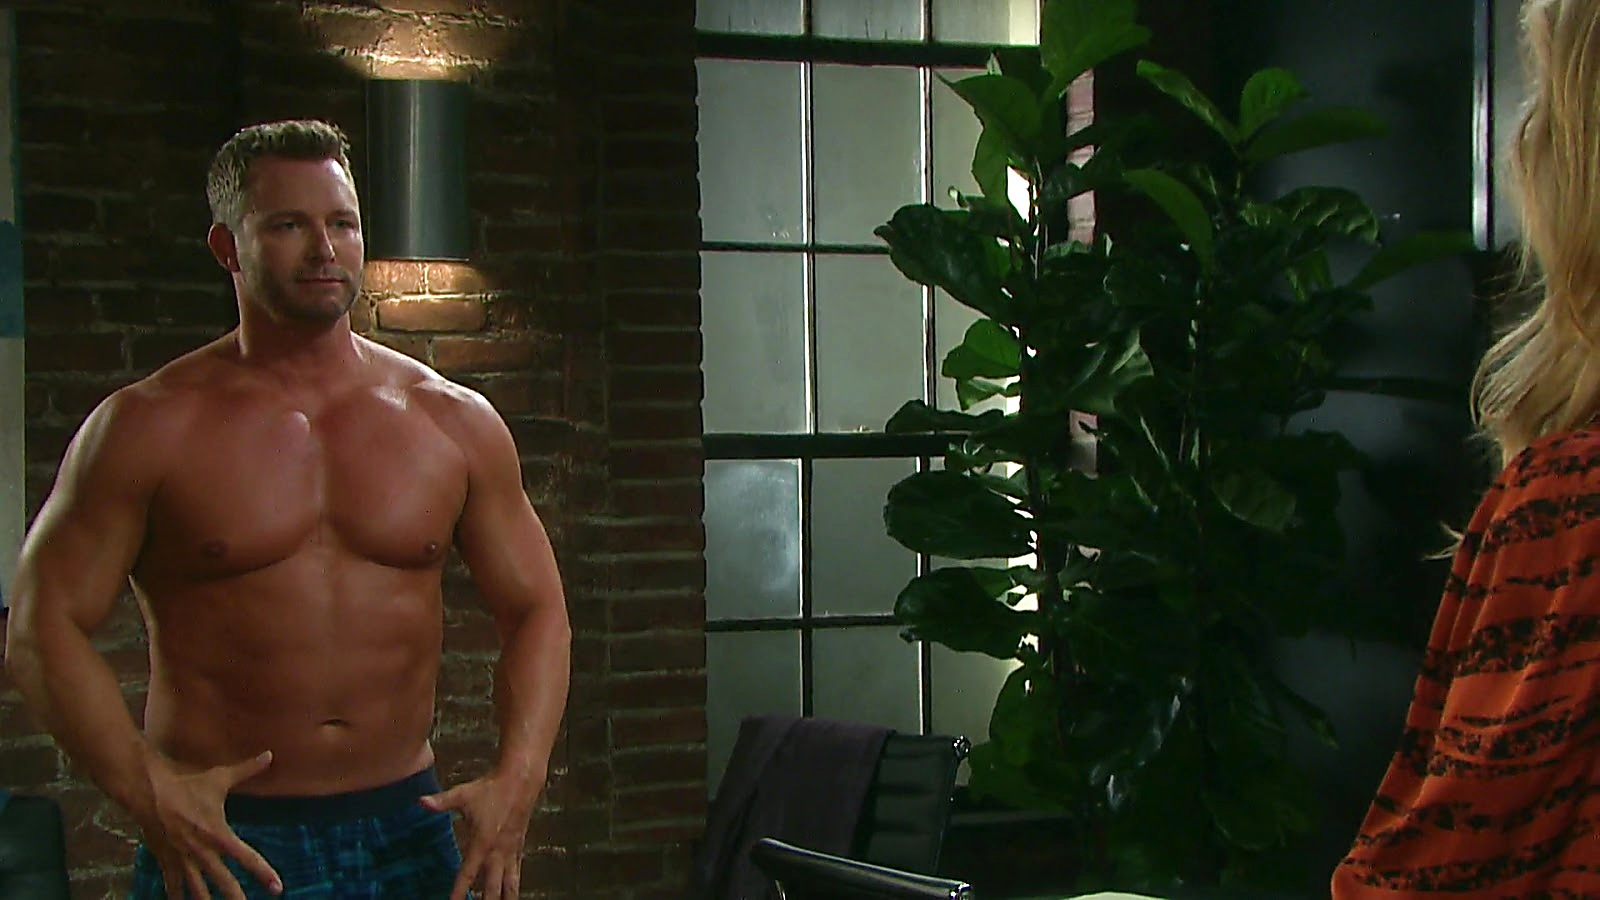 Eric Martsolf sexy shirtless scene March 25, 2020, 11am